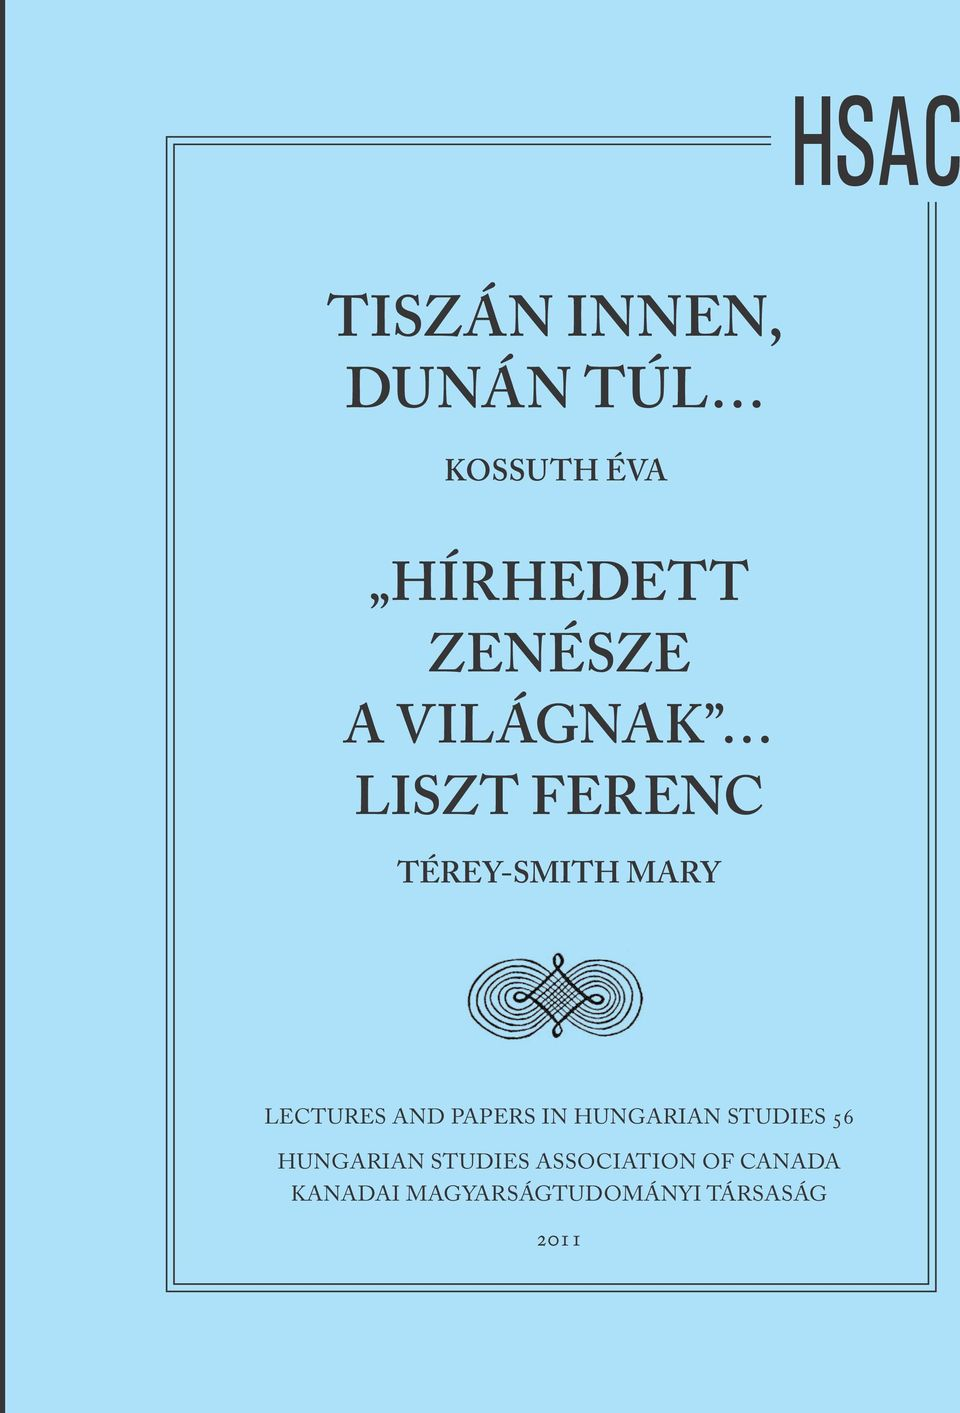 LECTURES AND PAPERS IN HUNGARIAN STUDIES 56 HUNGARIAN